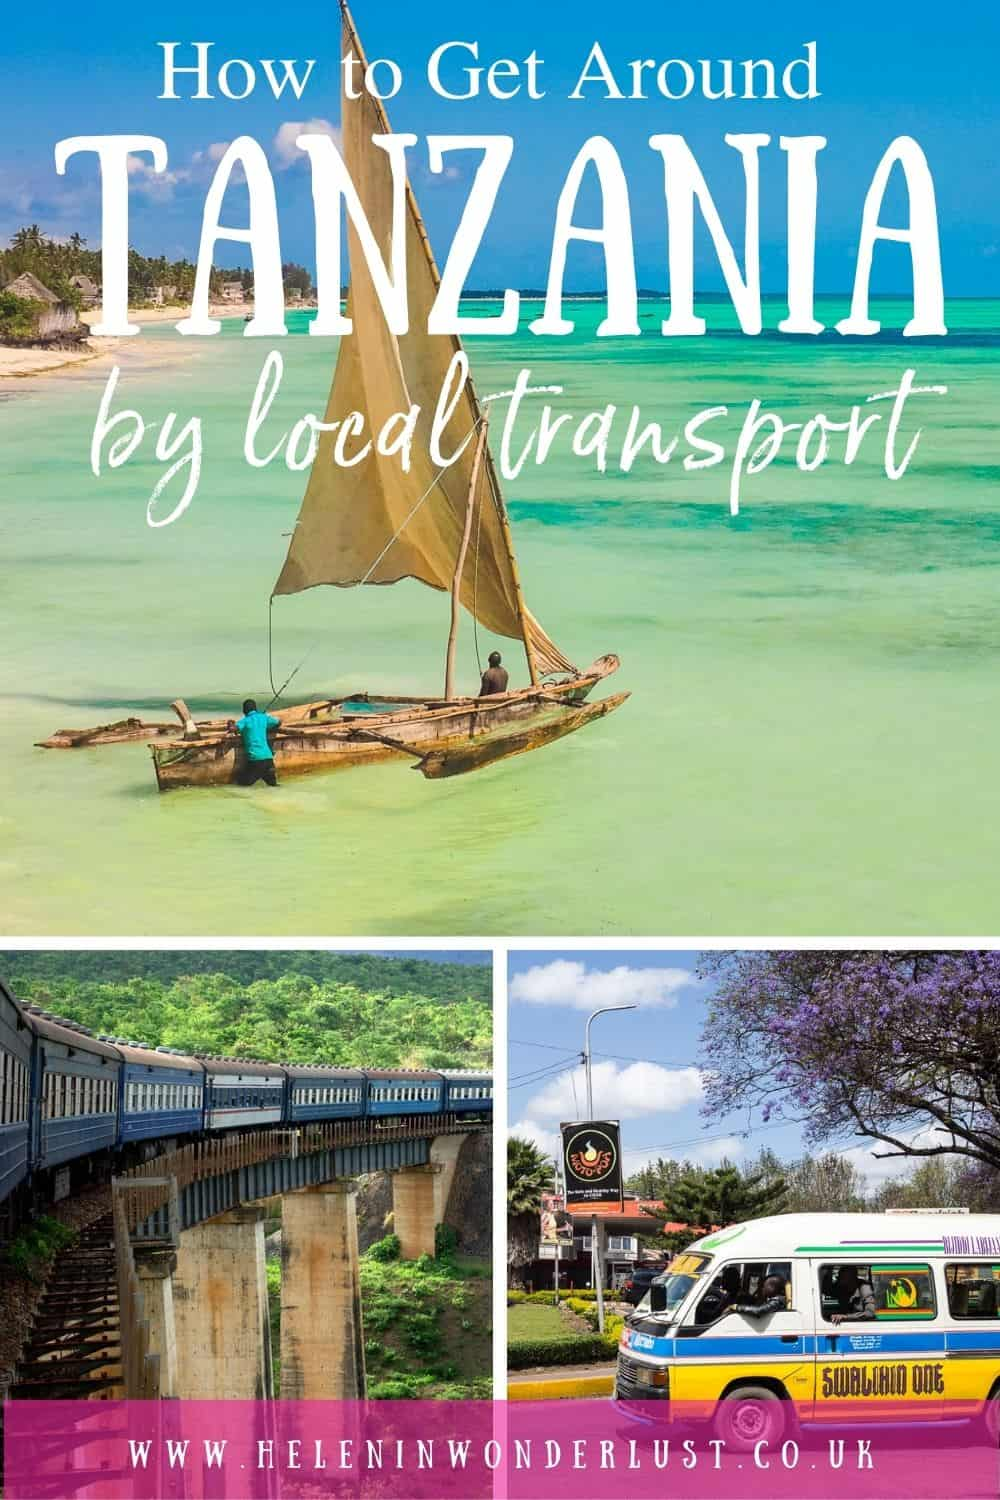 How To Get Around & Travel in Tanzania By Local Transport